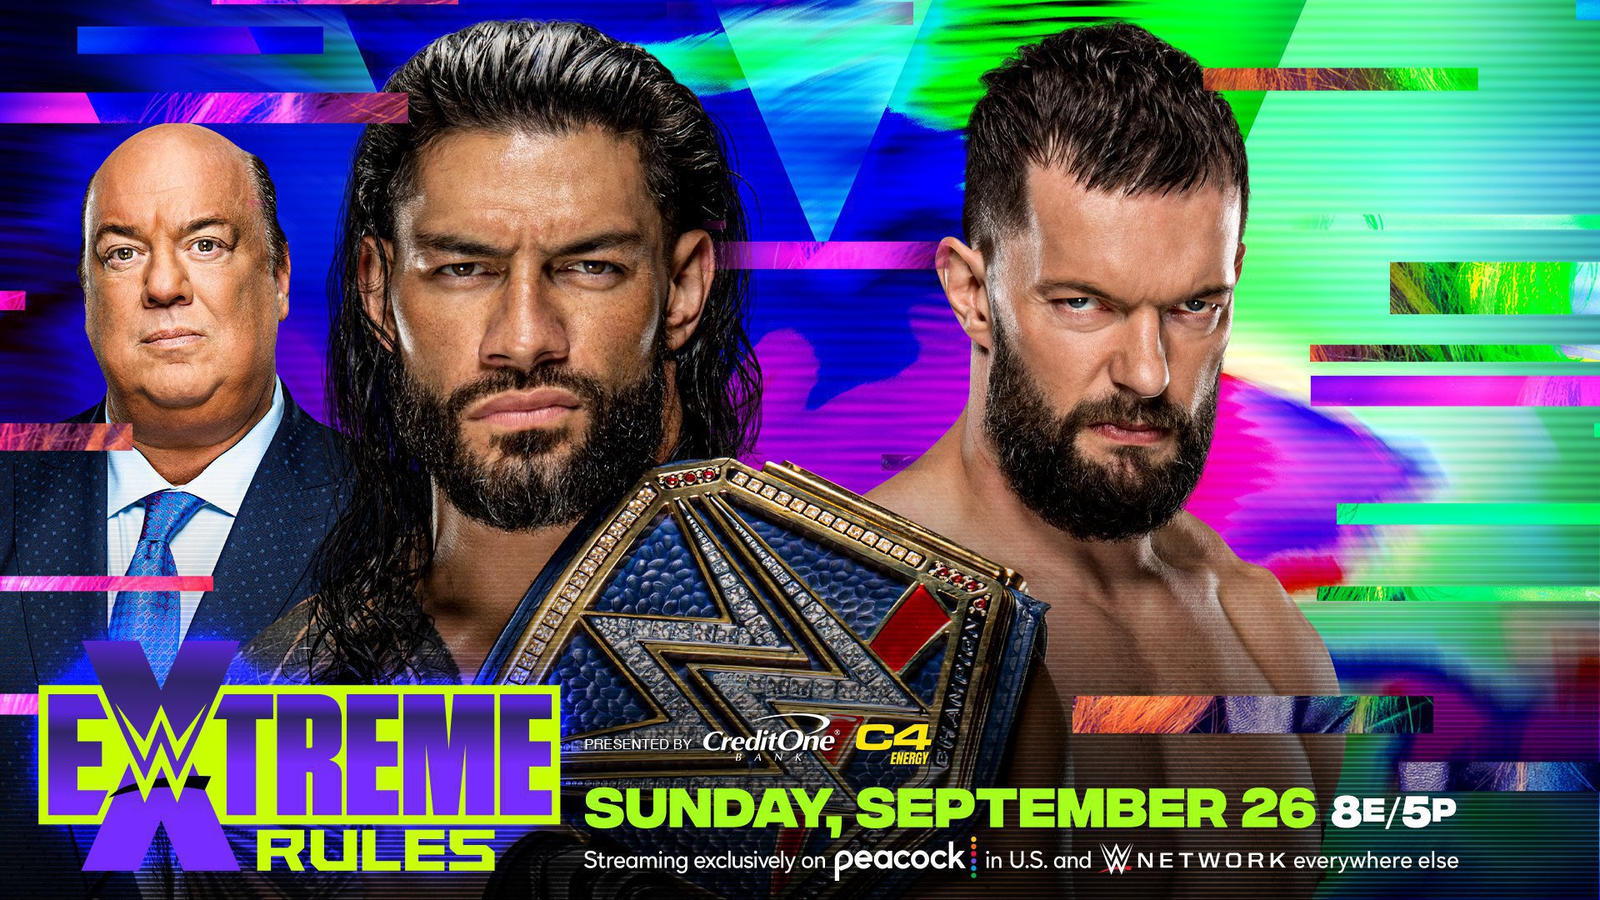 Roman Reigns' Title Match Announced For WWE Extreme Rules 2021 23